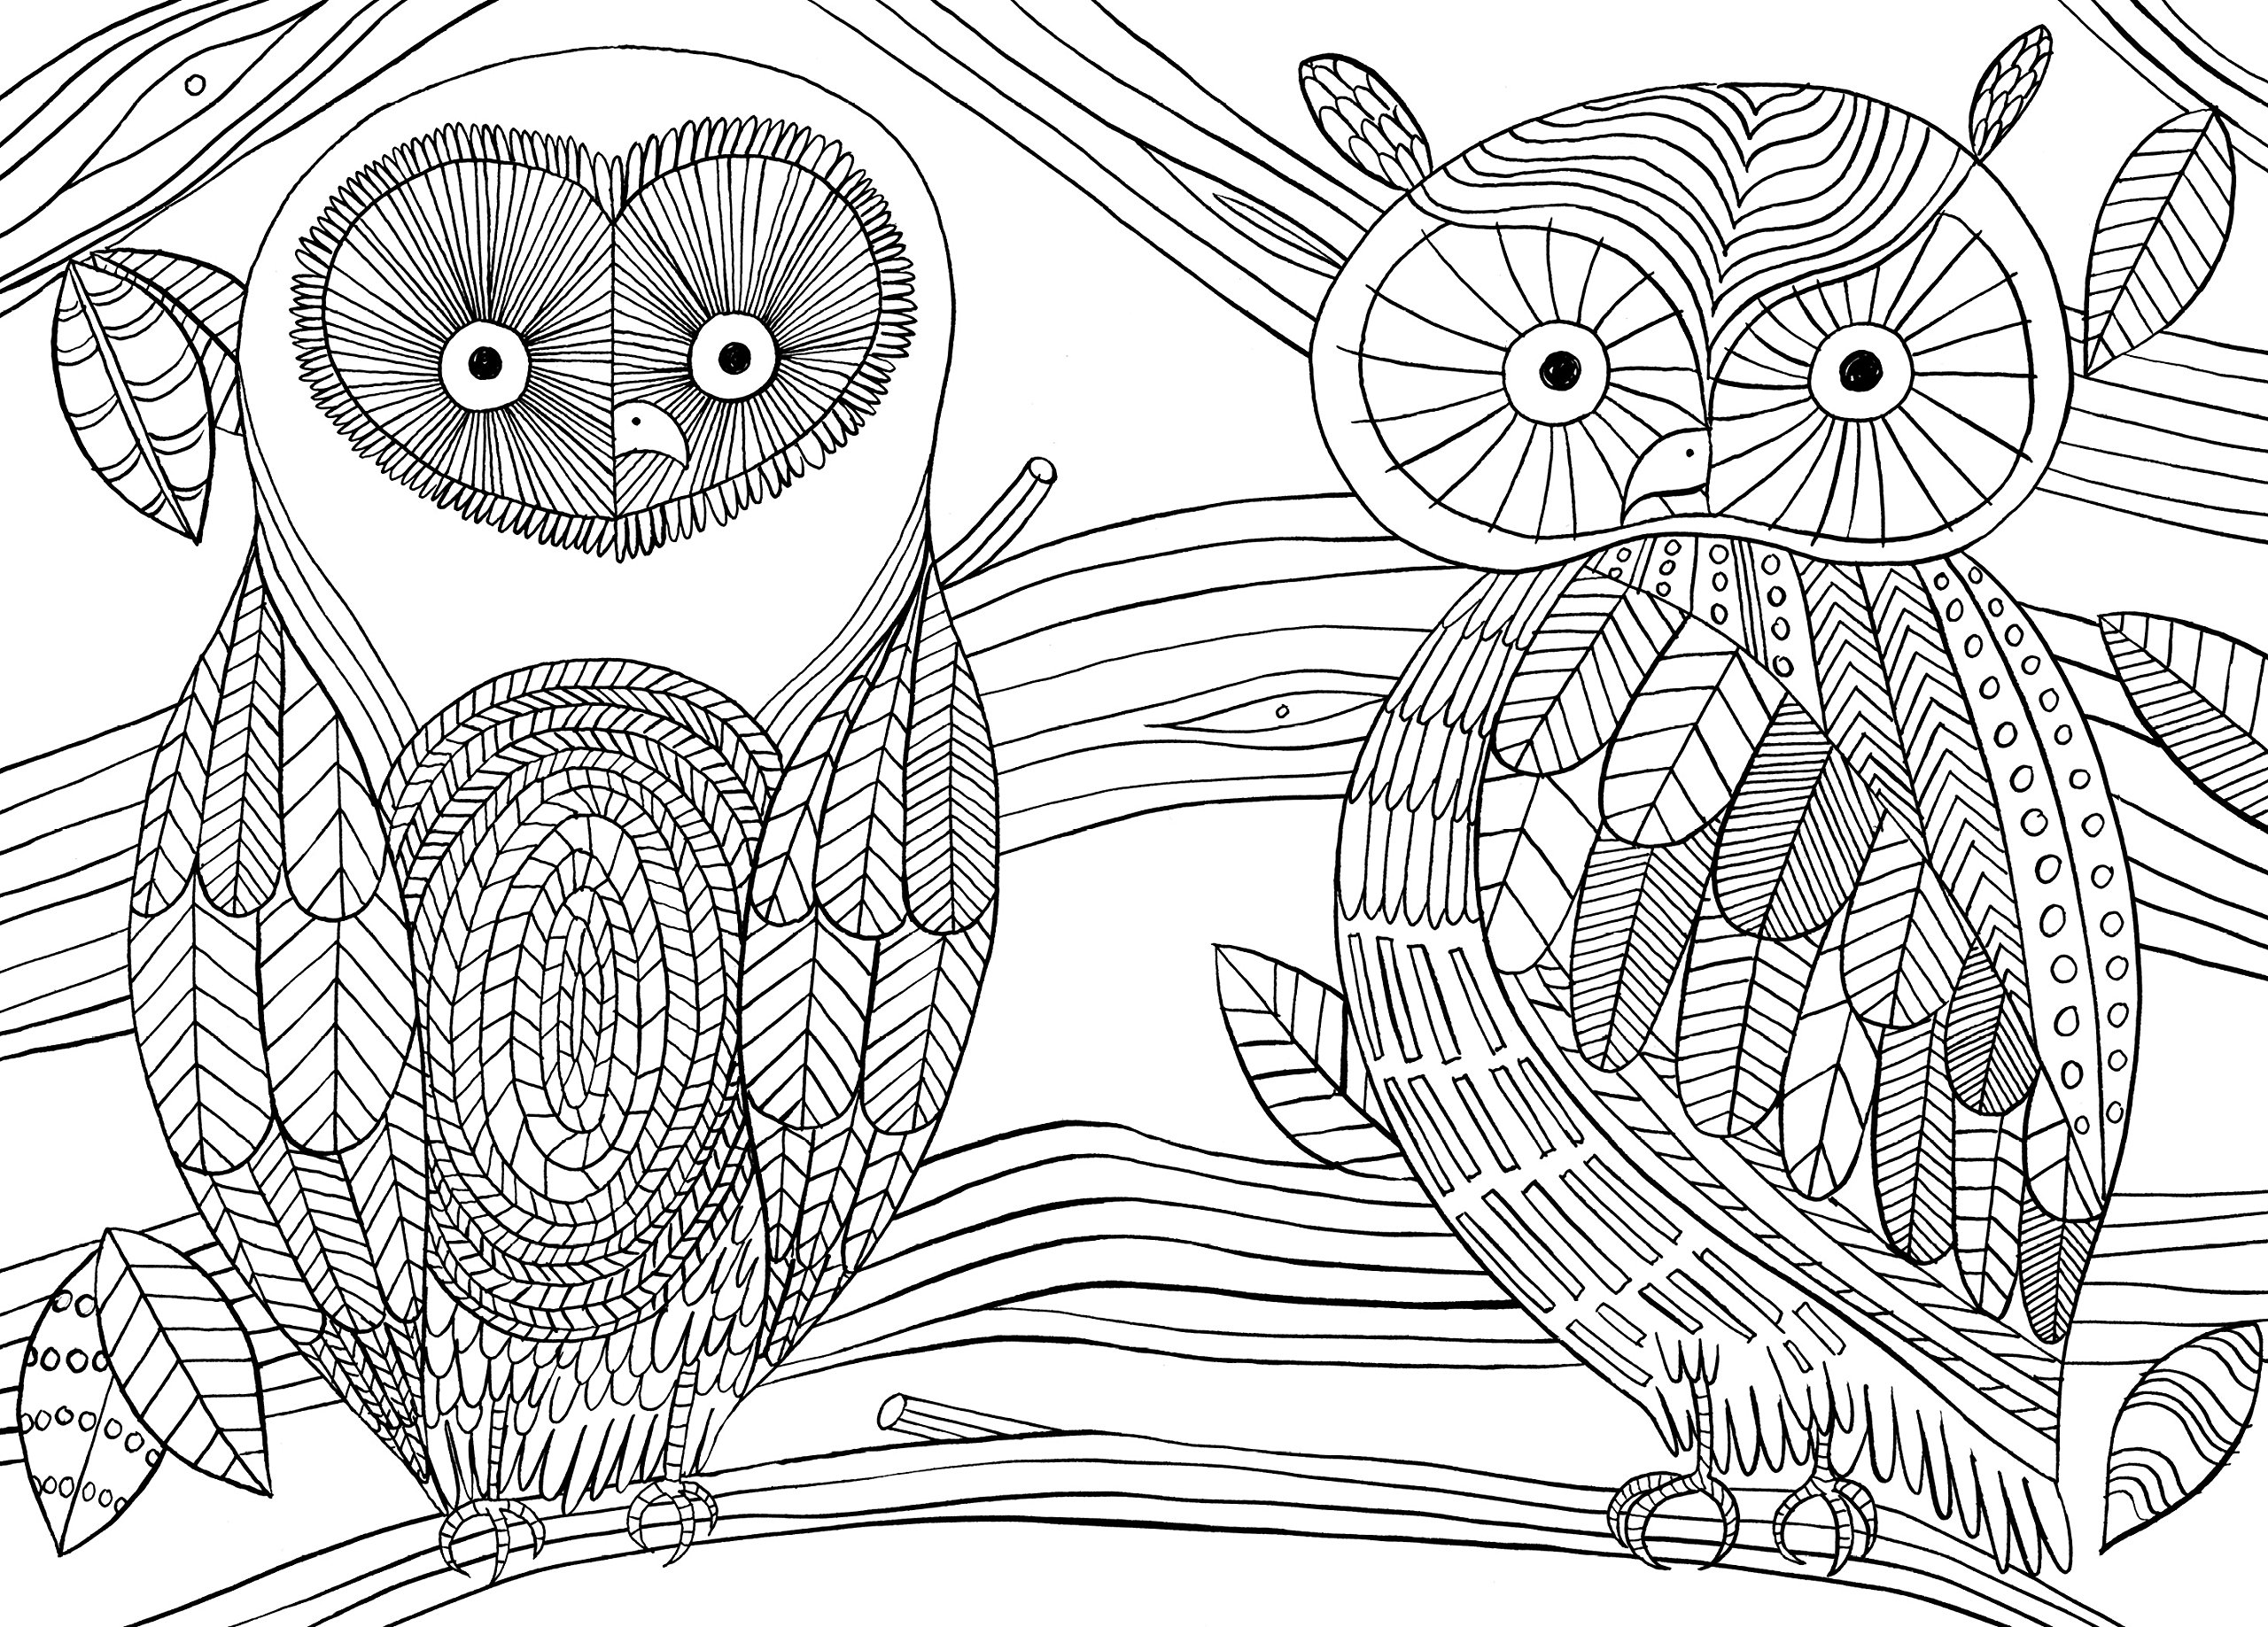 Mindfull Coulouring - Free Coloring Pages